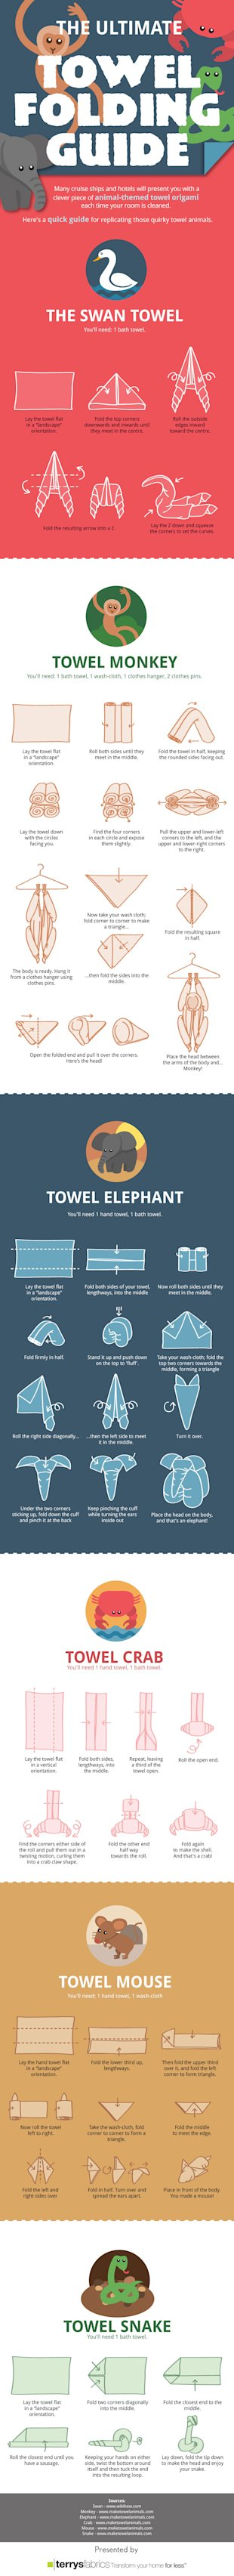 The Ultimate Towel Folding Guide [Infographic] image the ultimate towel folding guide